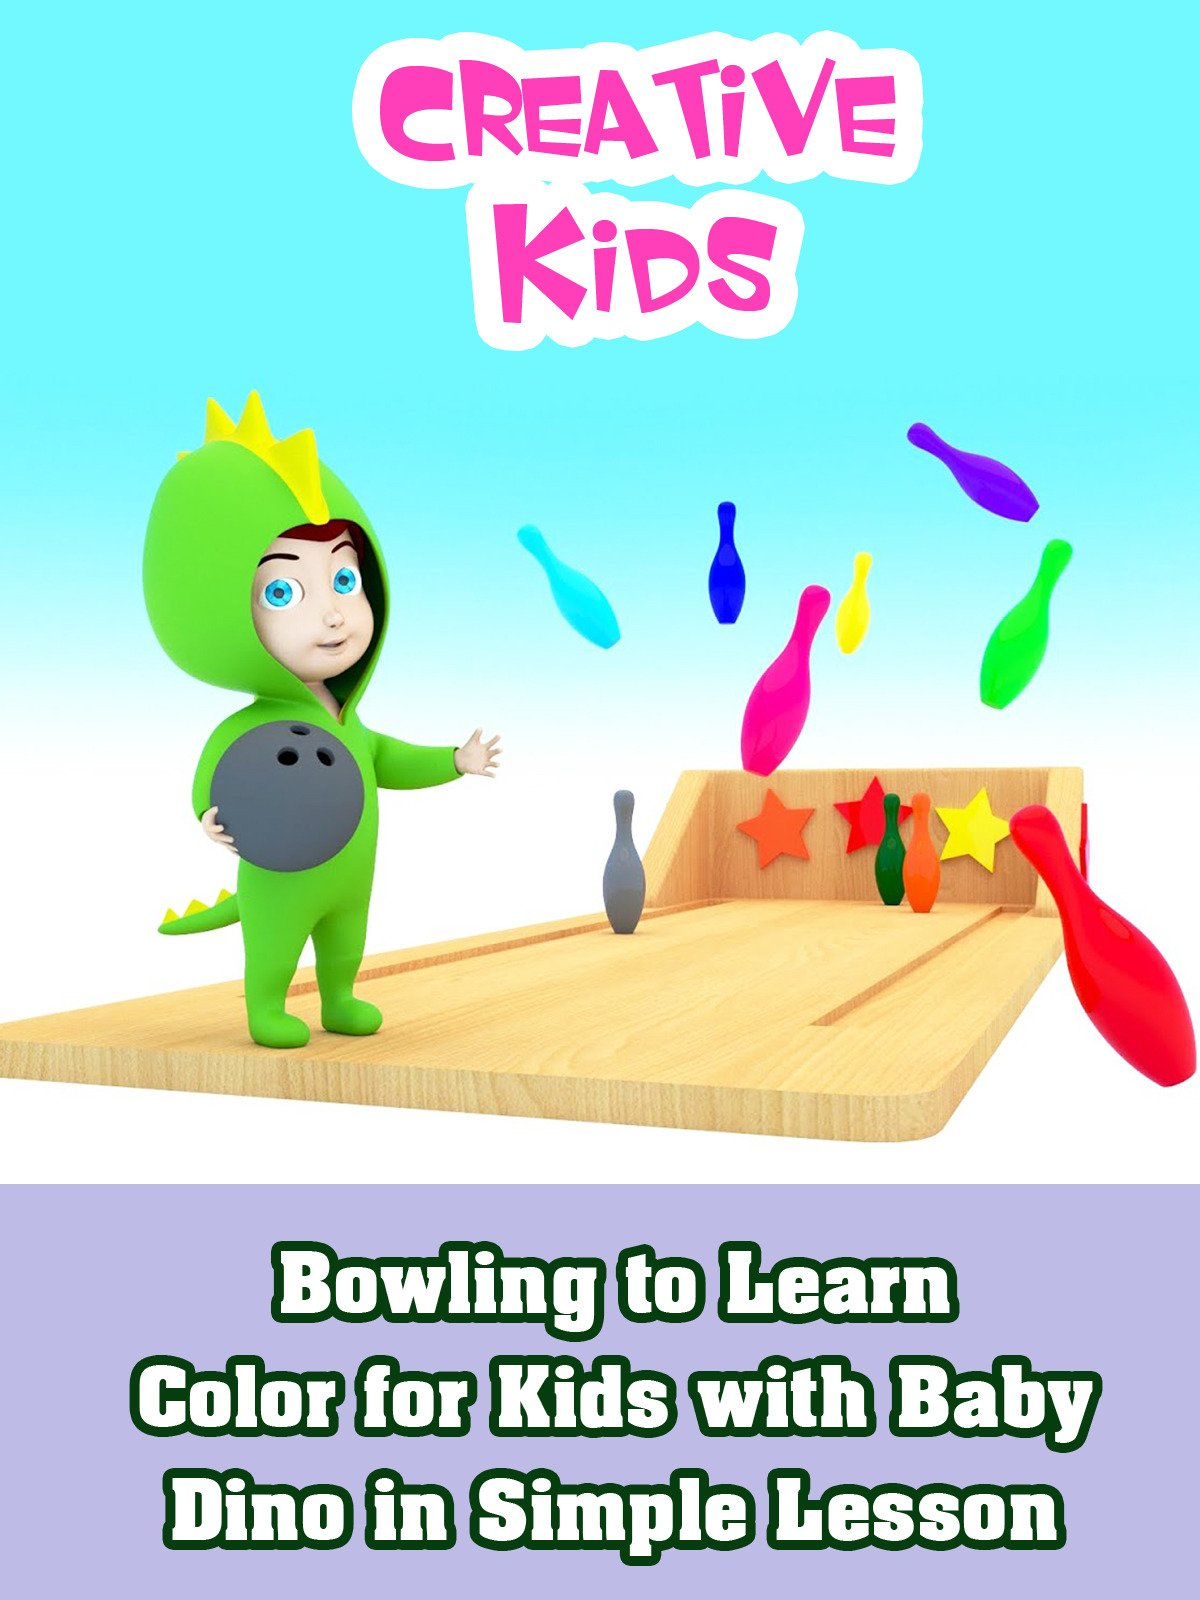 Bowling to Learn Color for Kids with Baby Dino in Simple Lesson